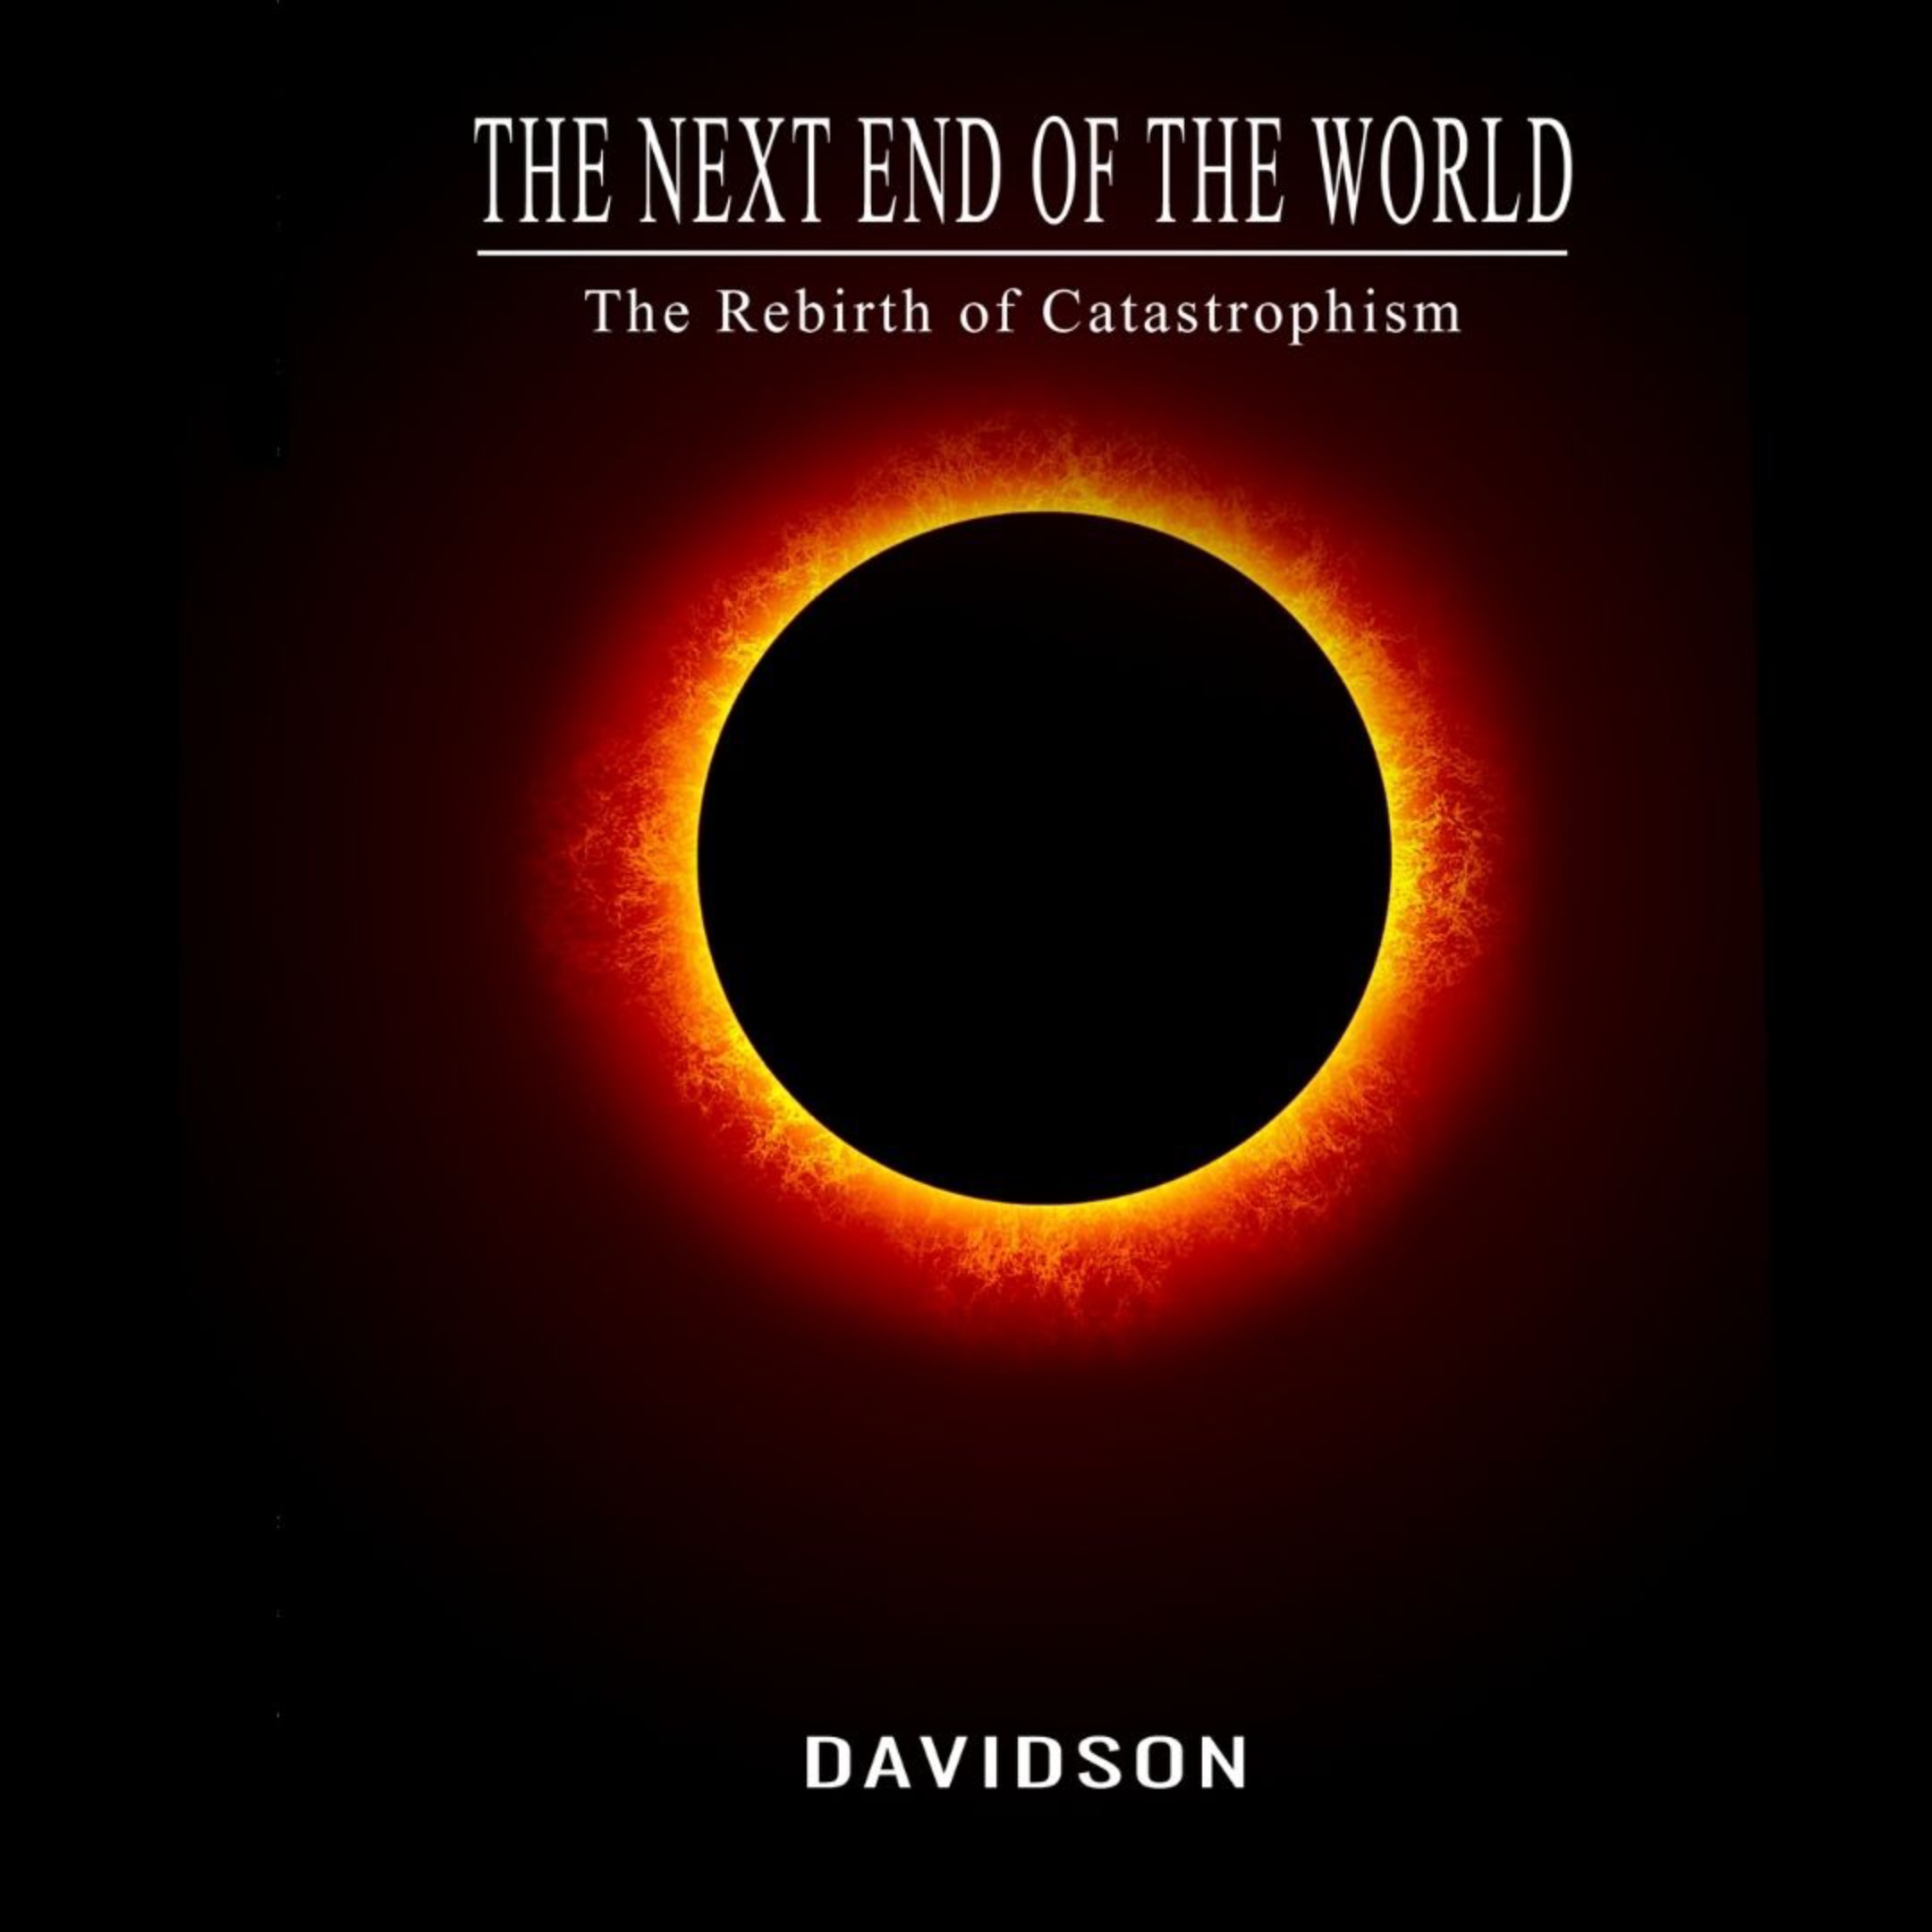 PRE-ORDER The Next End of the World: The Rebirth of Catastrophism